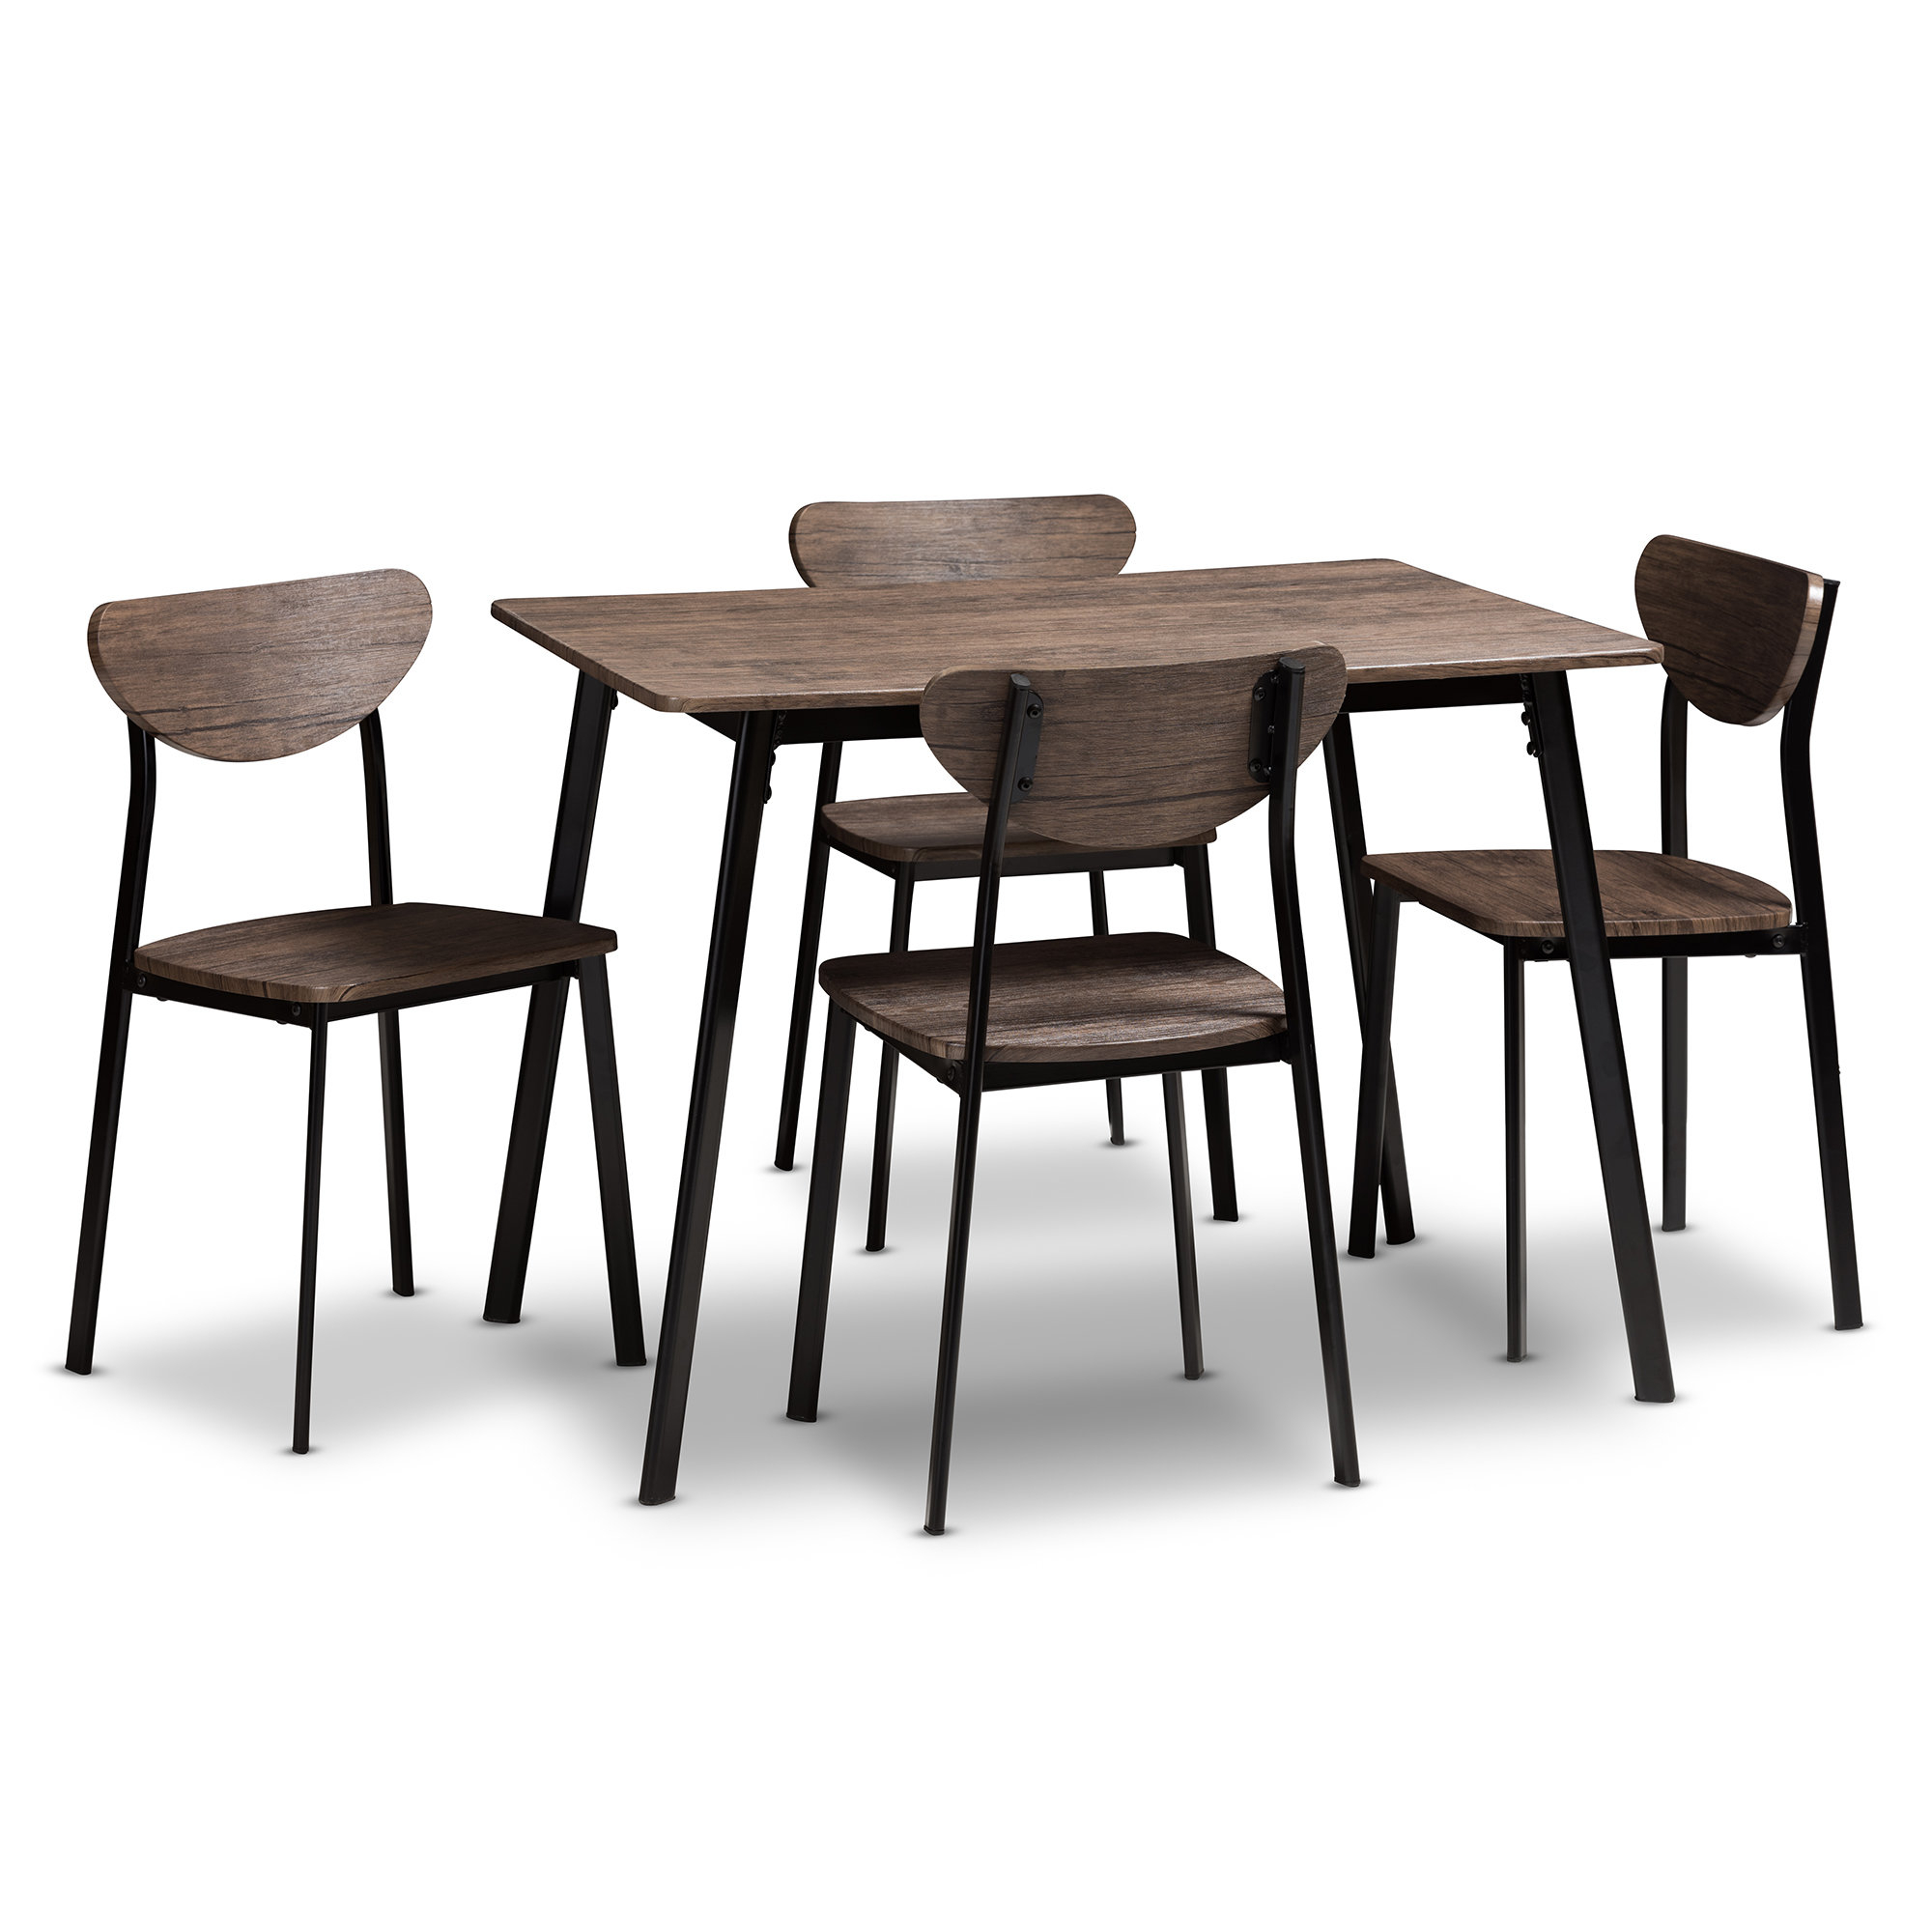 Wayfair Inside Widely Used Emmeline 5 Piece Breakfast Nook Dining Sets (View 13 of 25)